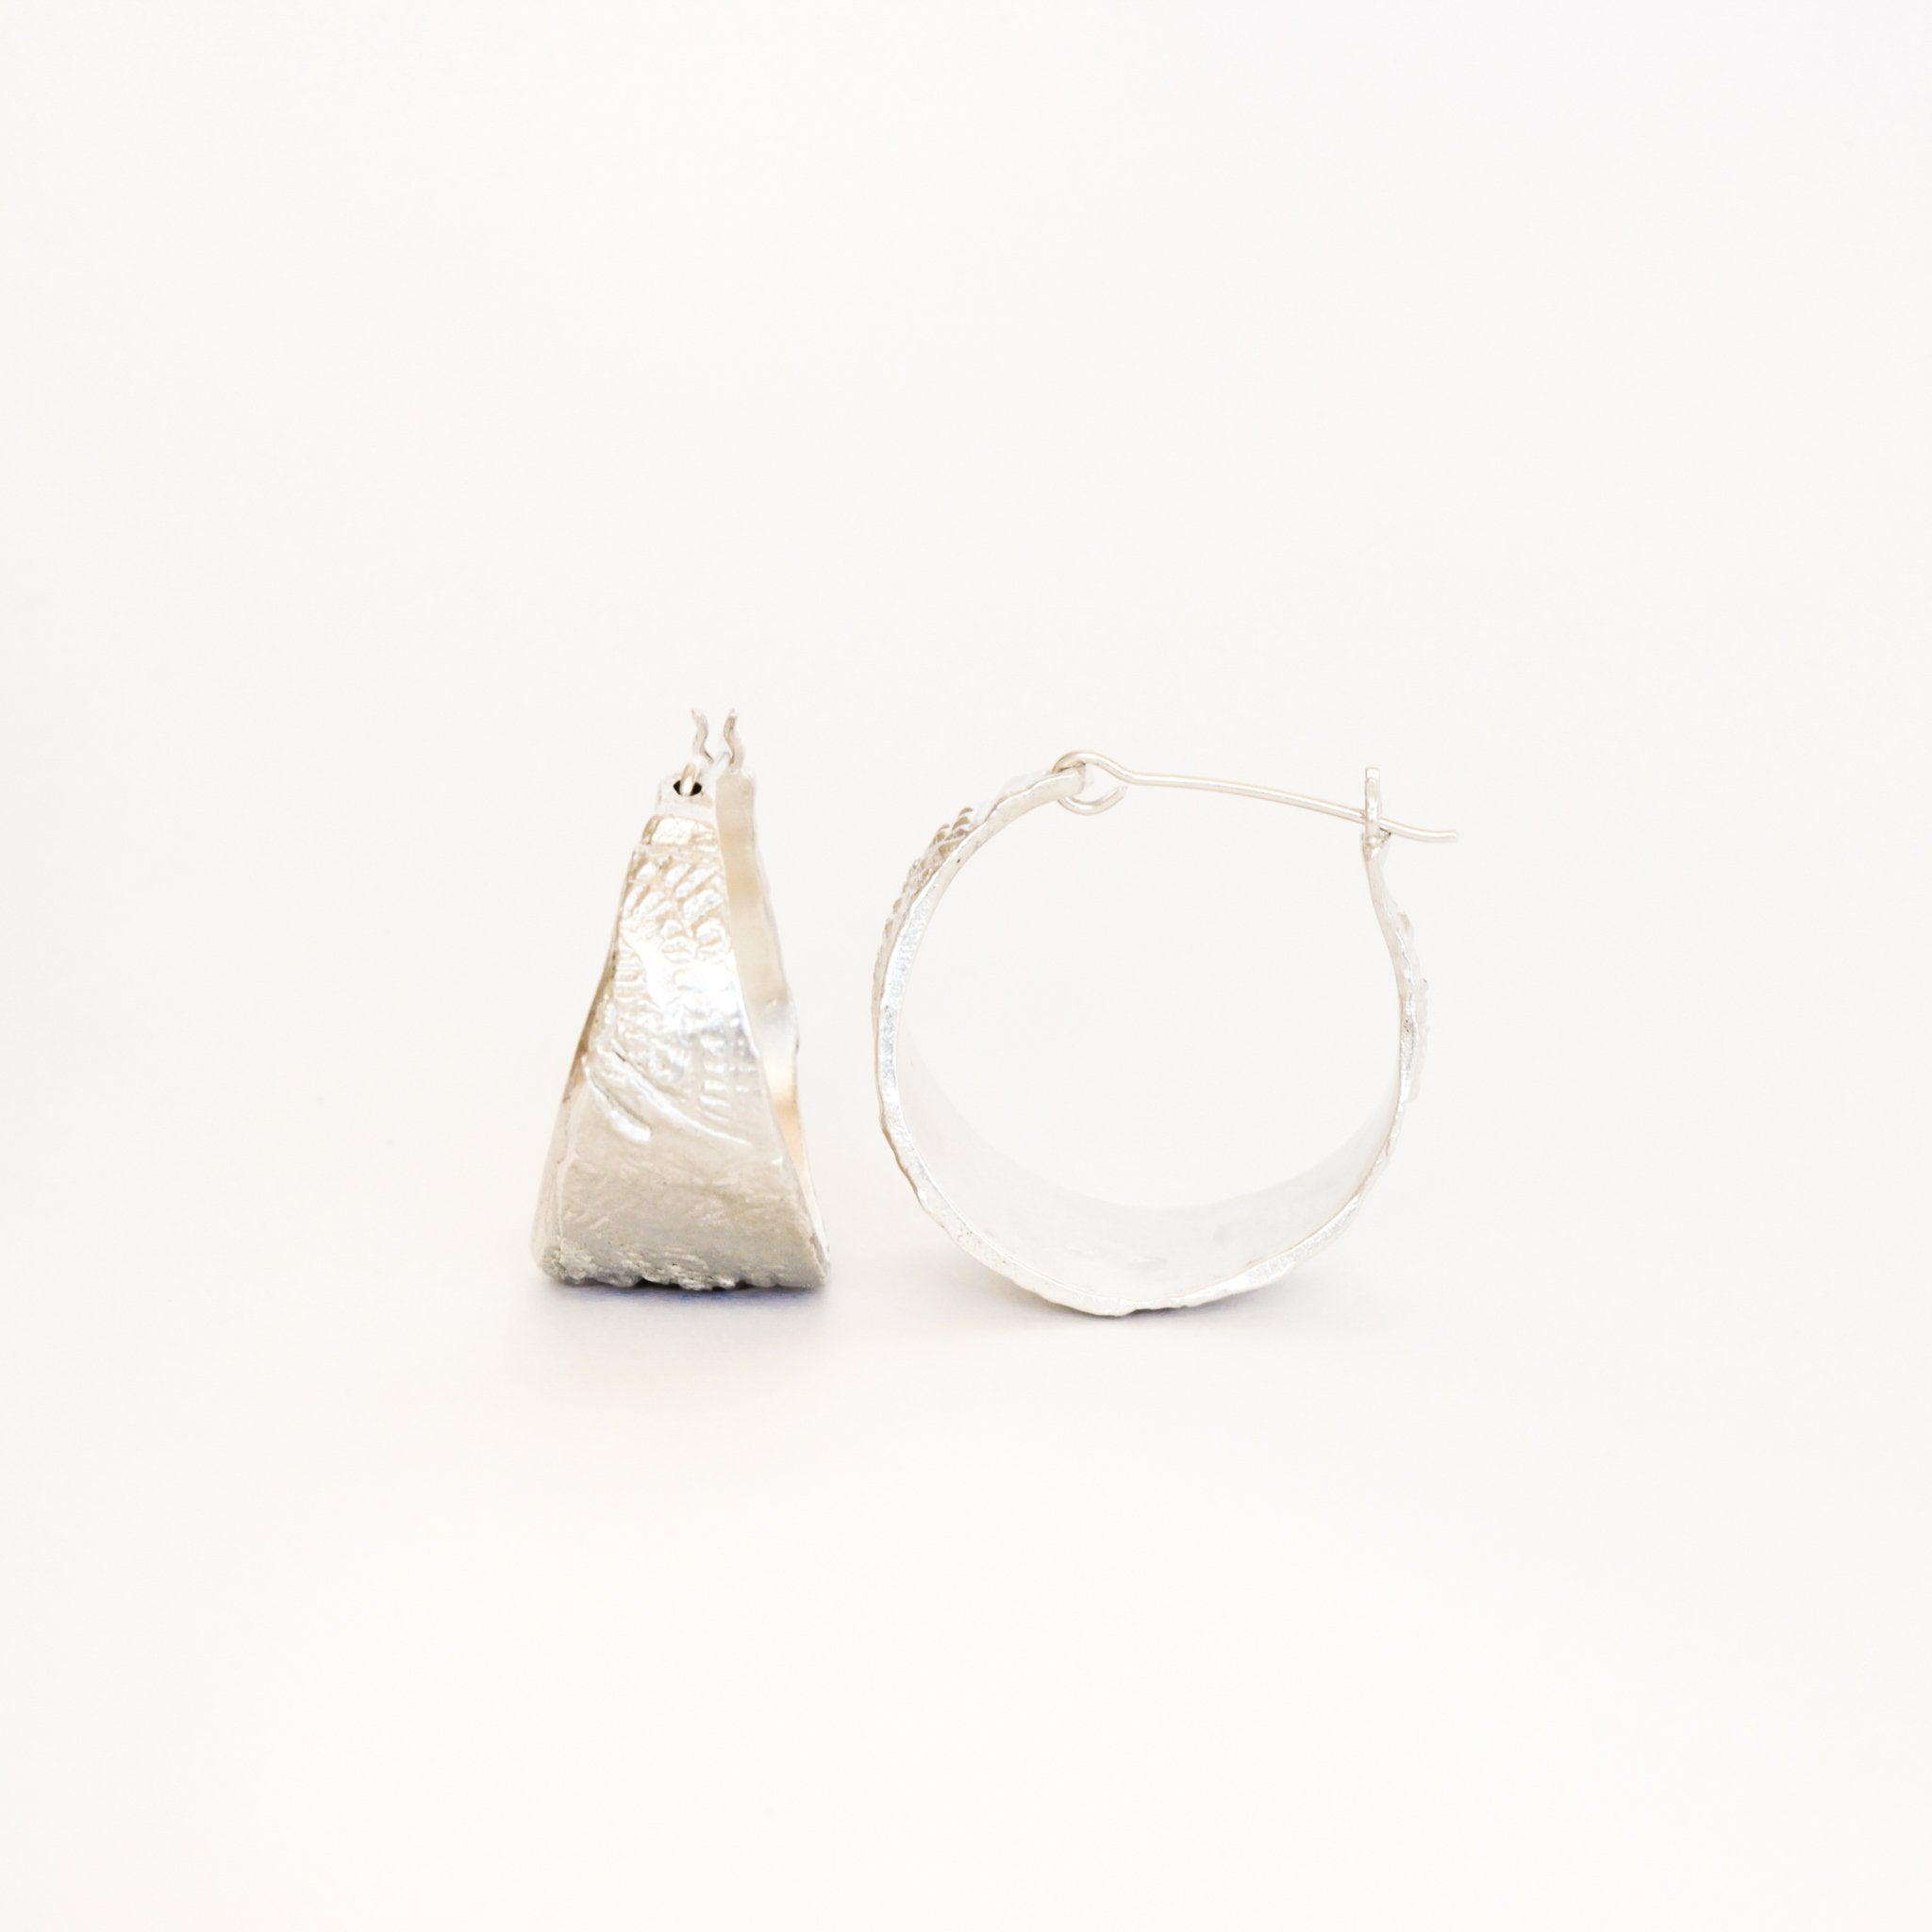 Handmade Textured Hoop Earrings in Sterling Silver, Hand Made Jewellery, Made in Melbourne